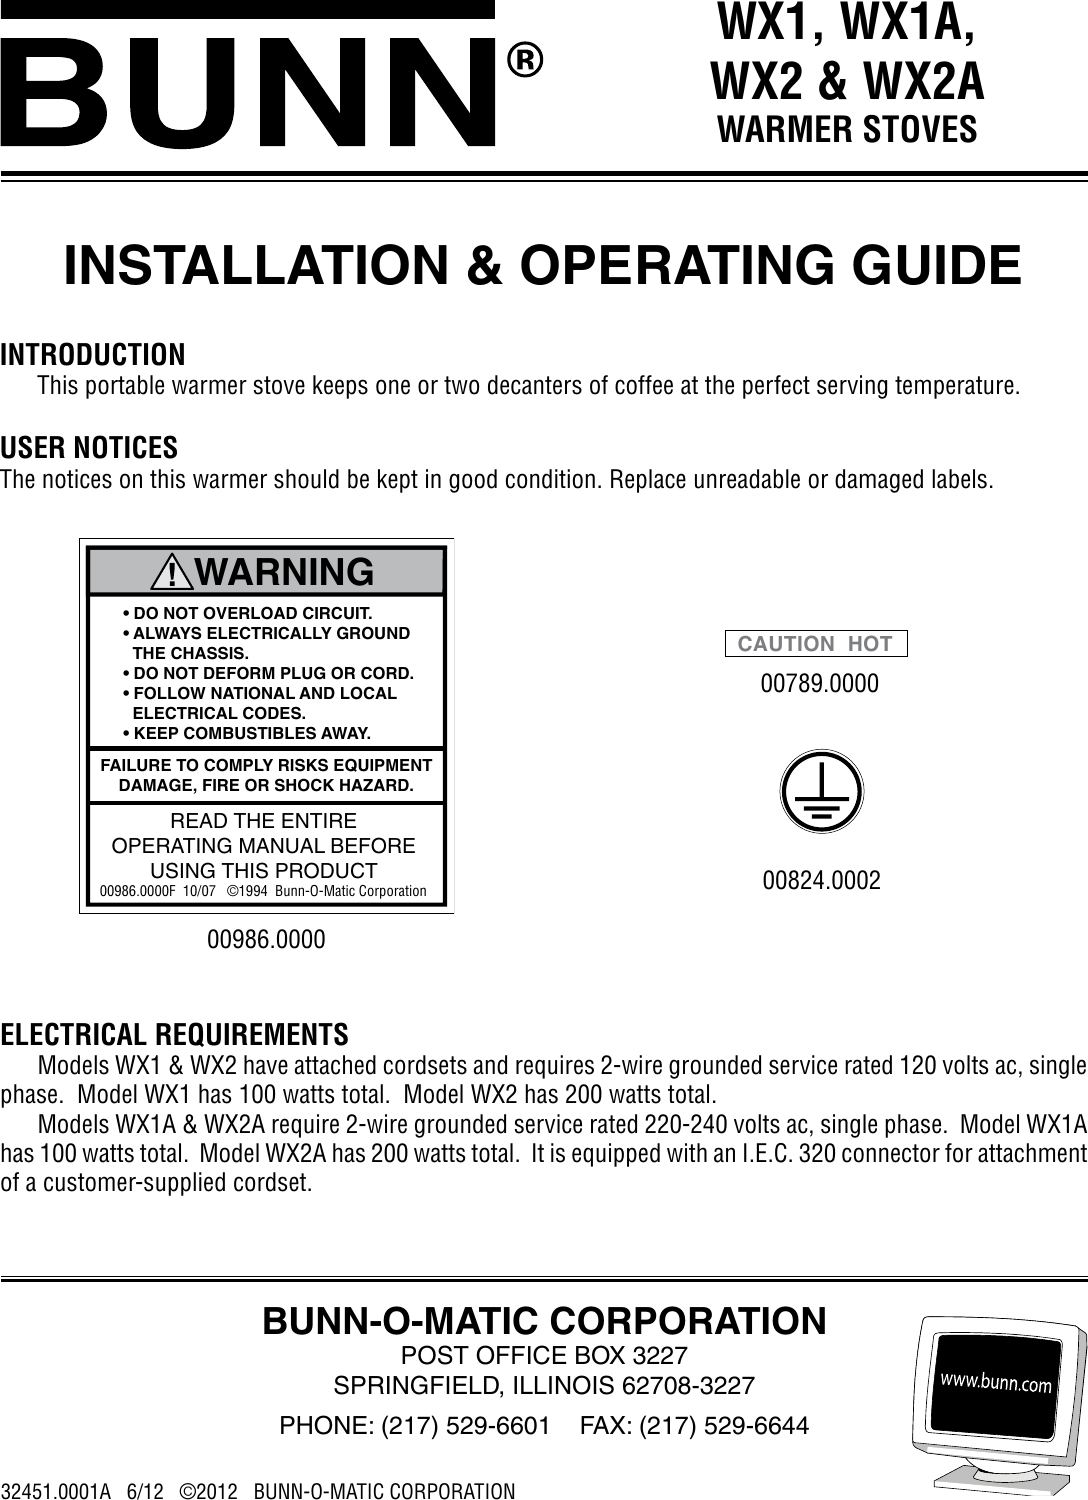 Bunn Wx1 Wx2 Owner S Manual Installation Operating Wx1a Model Bx Wiring Diagram Wx2a Warmer Stoves Guide